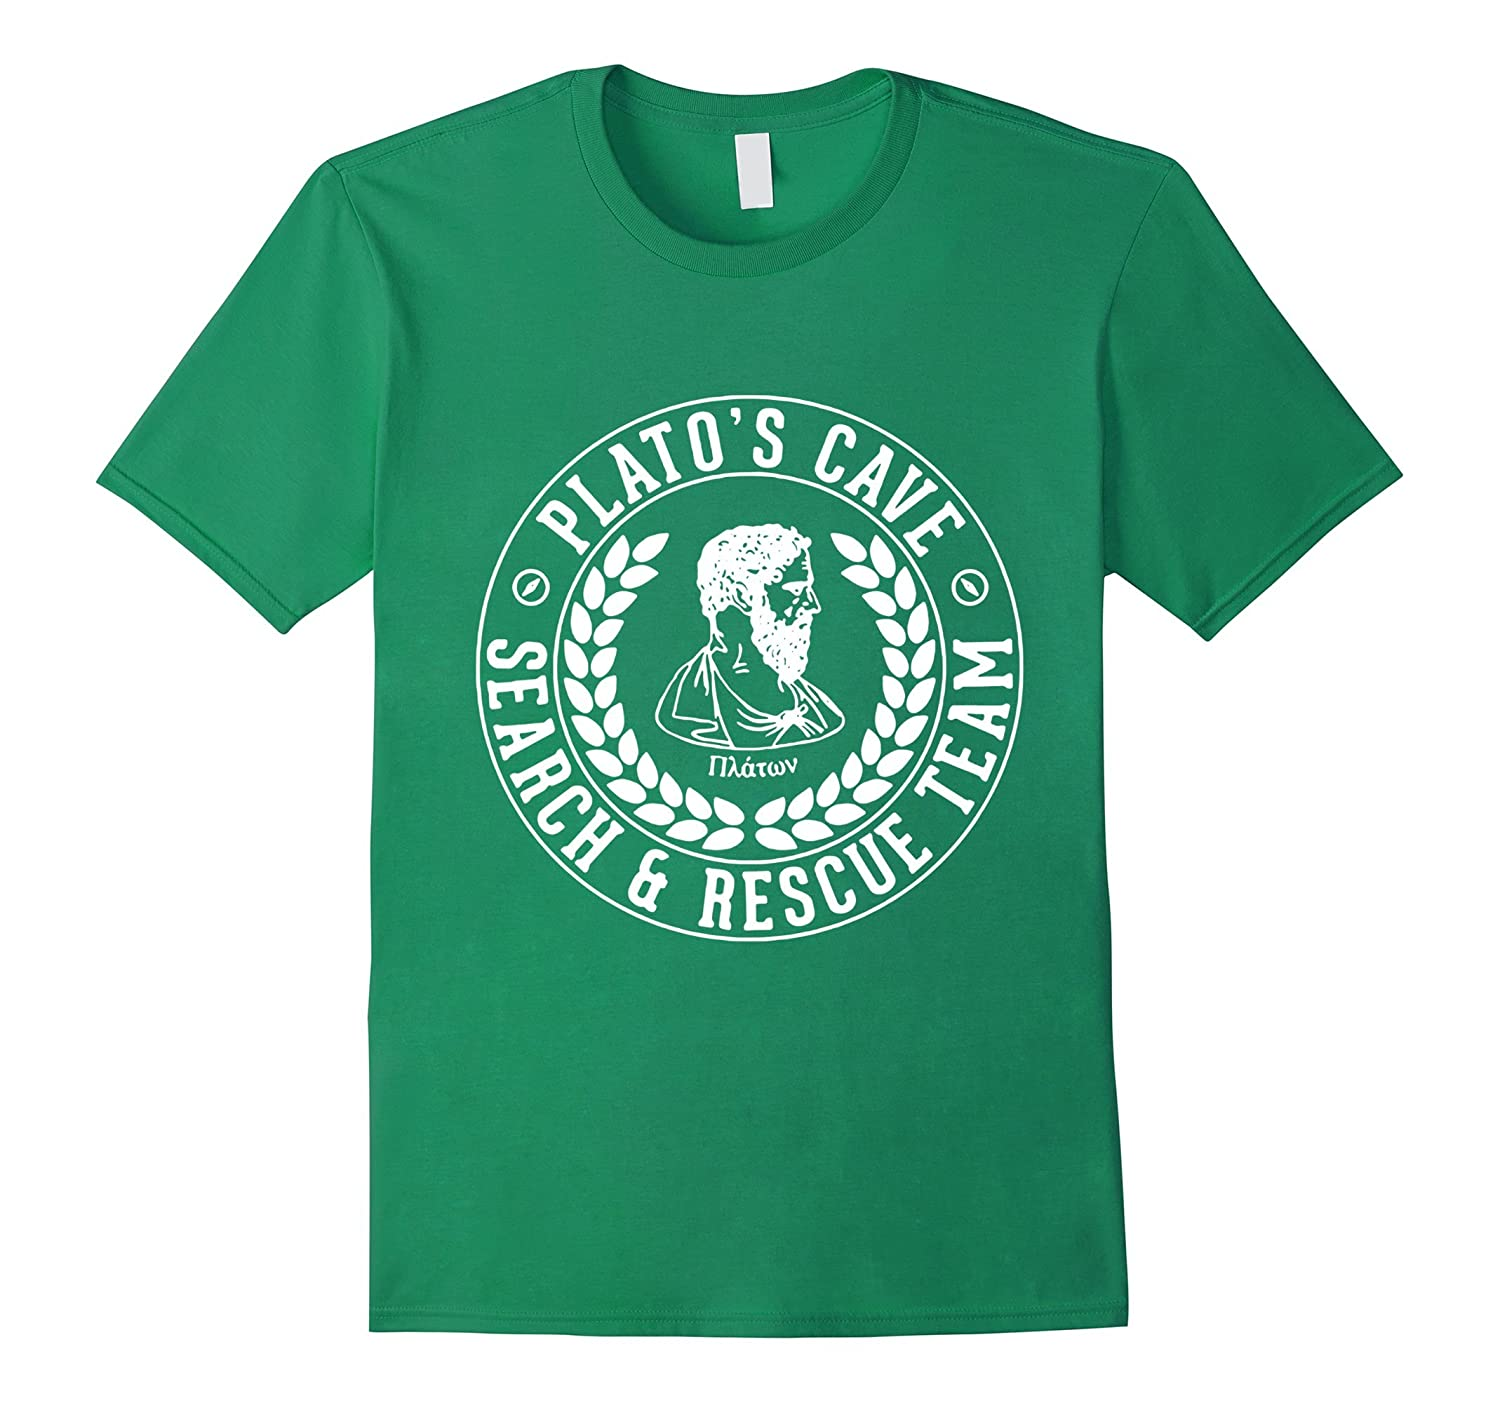 Secret design platos cave search rescue team t shirt rt for Secret design